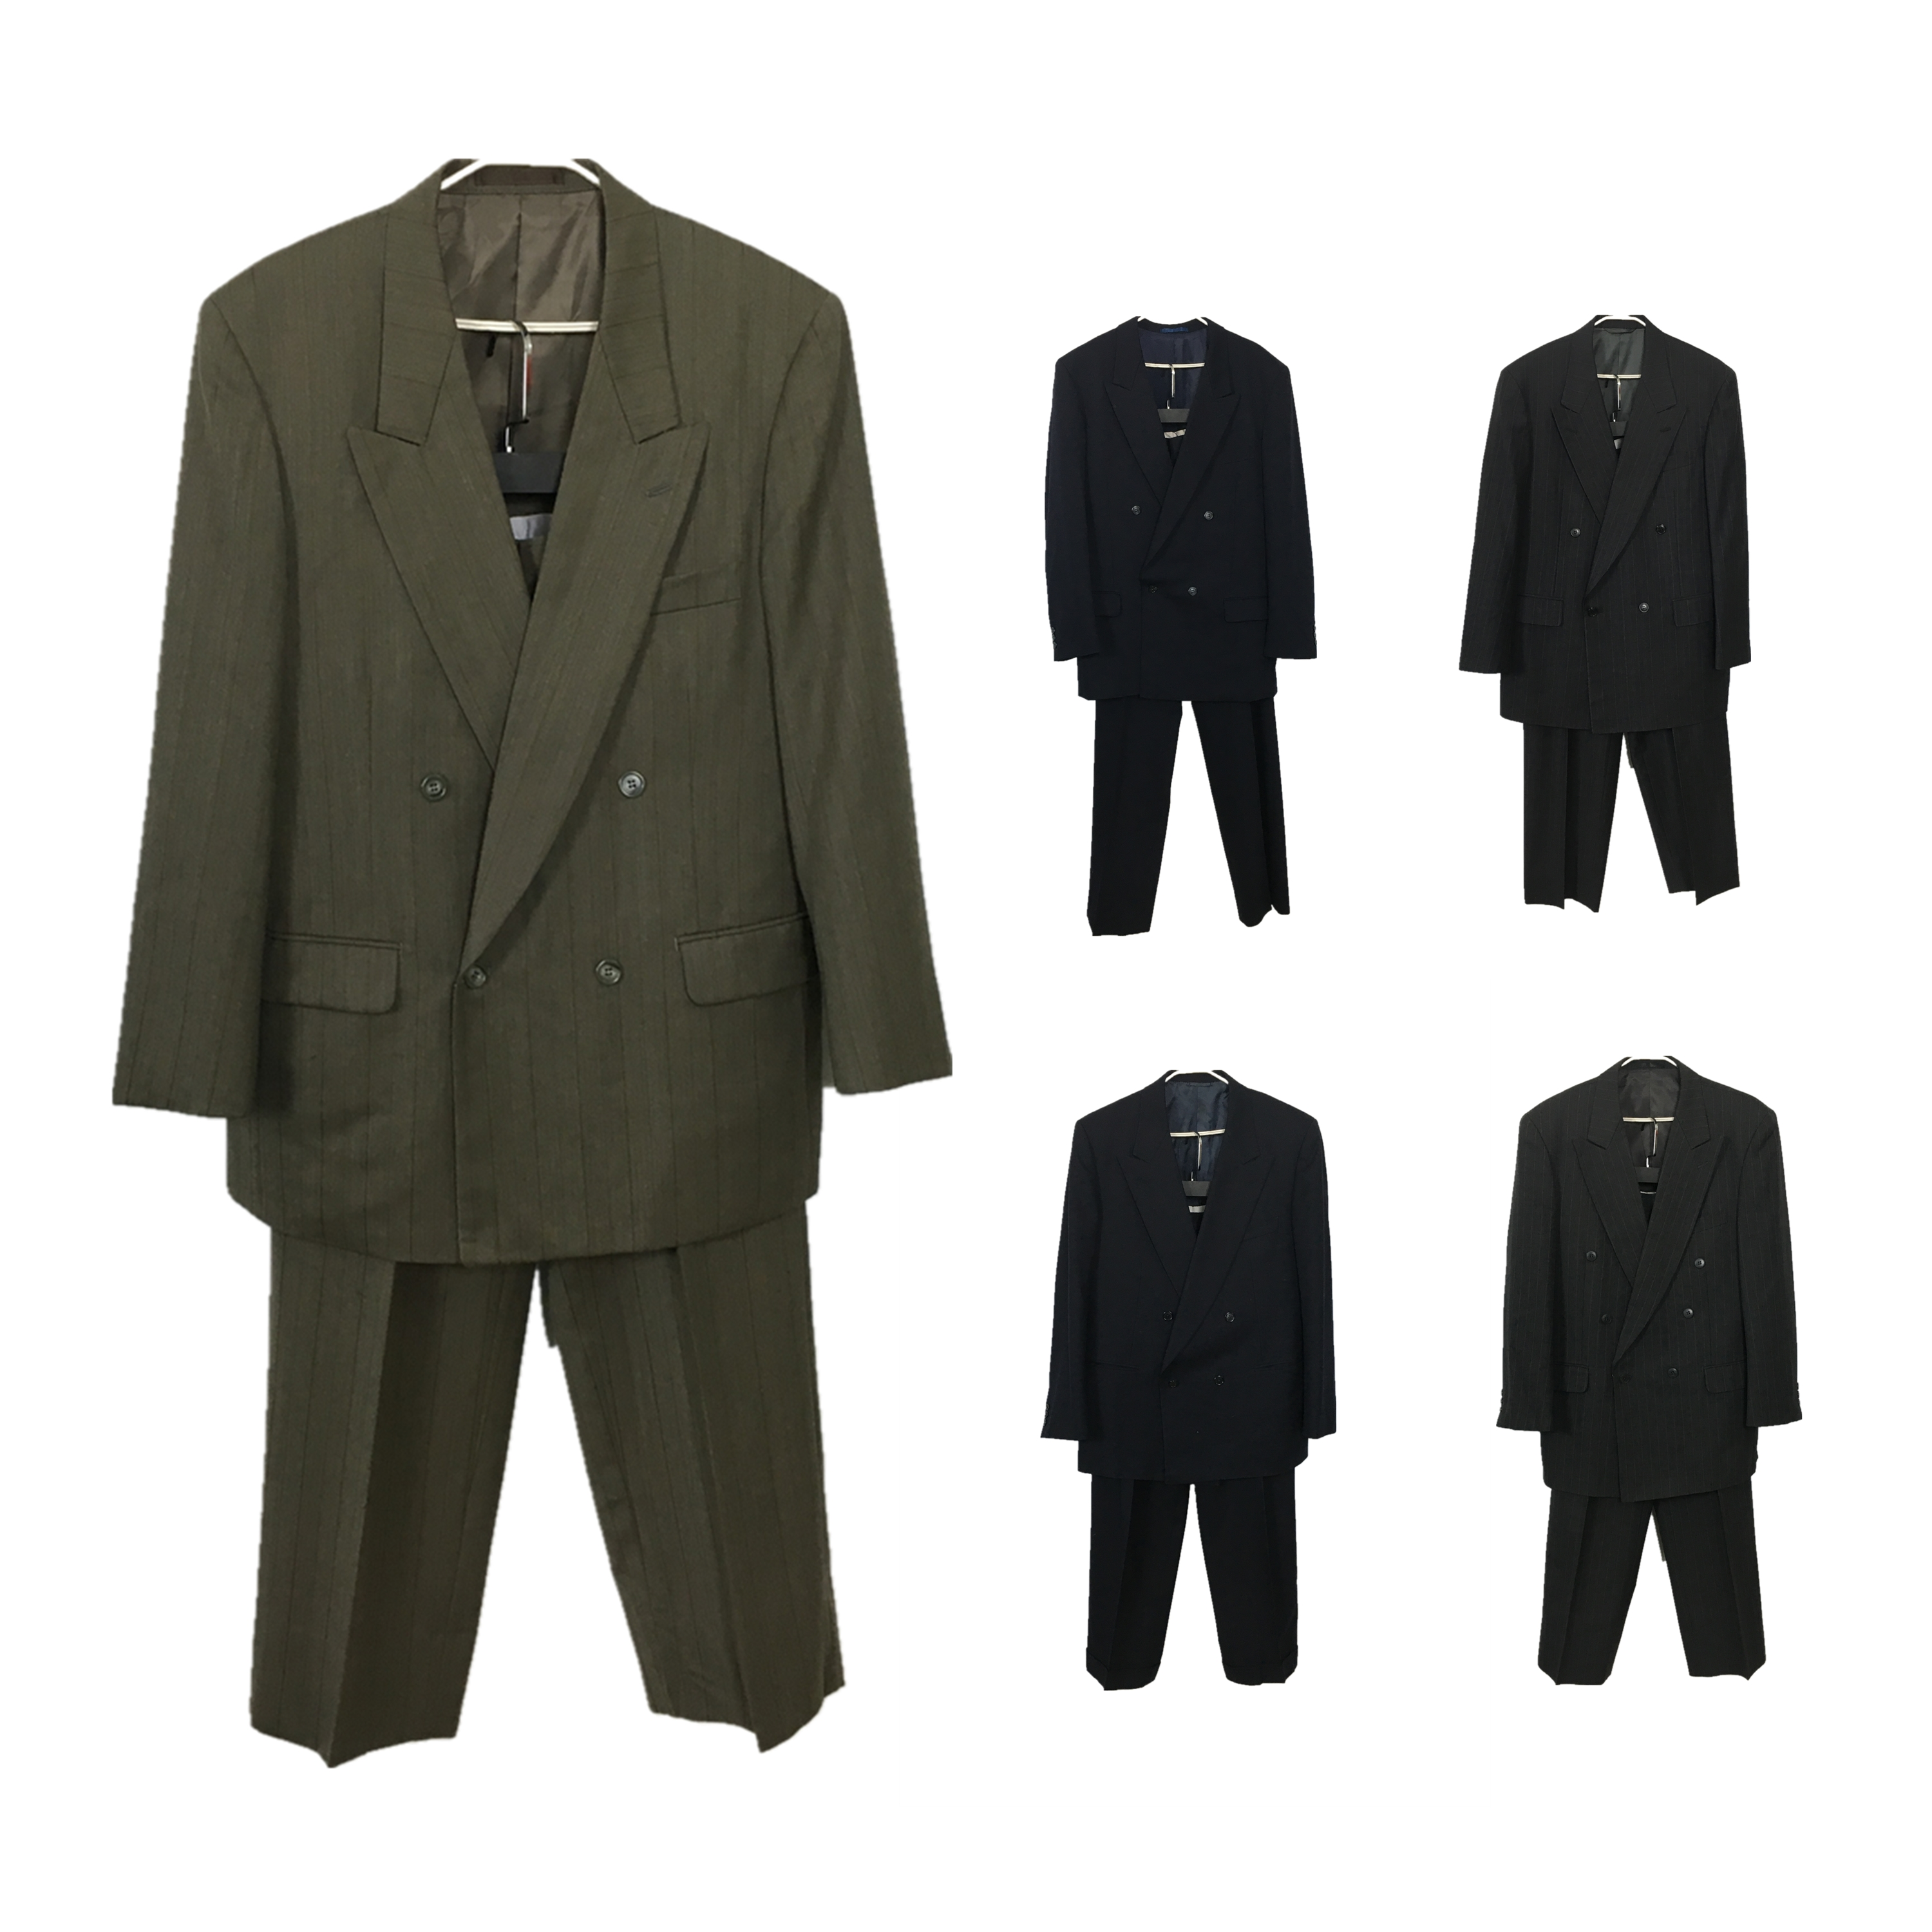 Vintage ancient Japanese wool suit British casual mens two-piece double breasted suit x1873